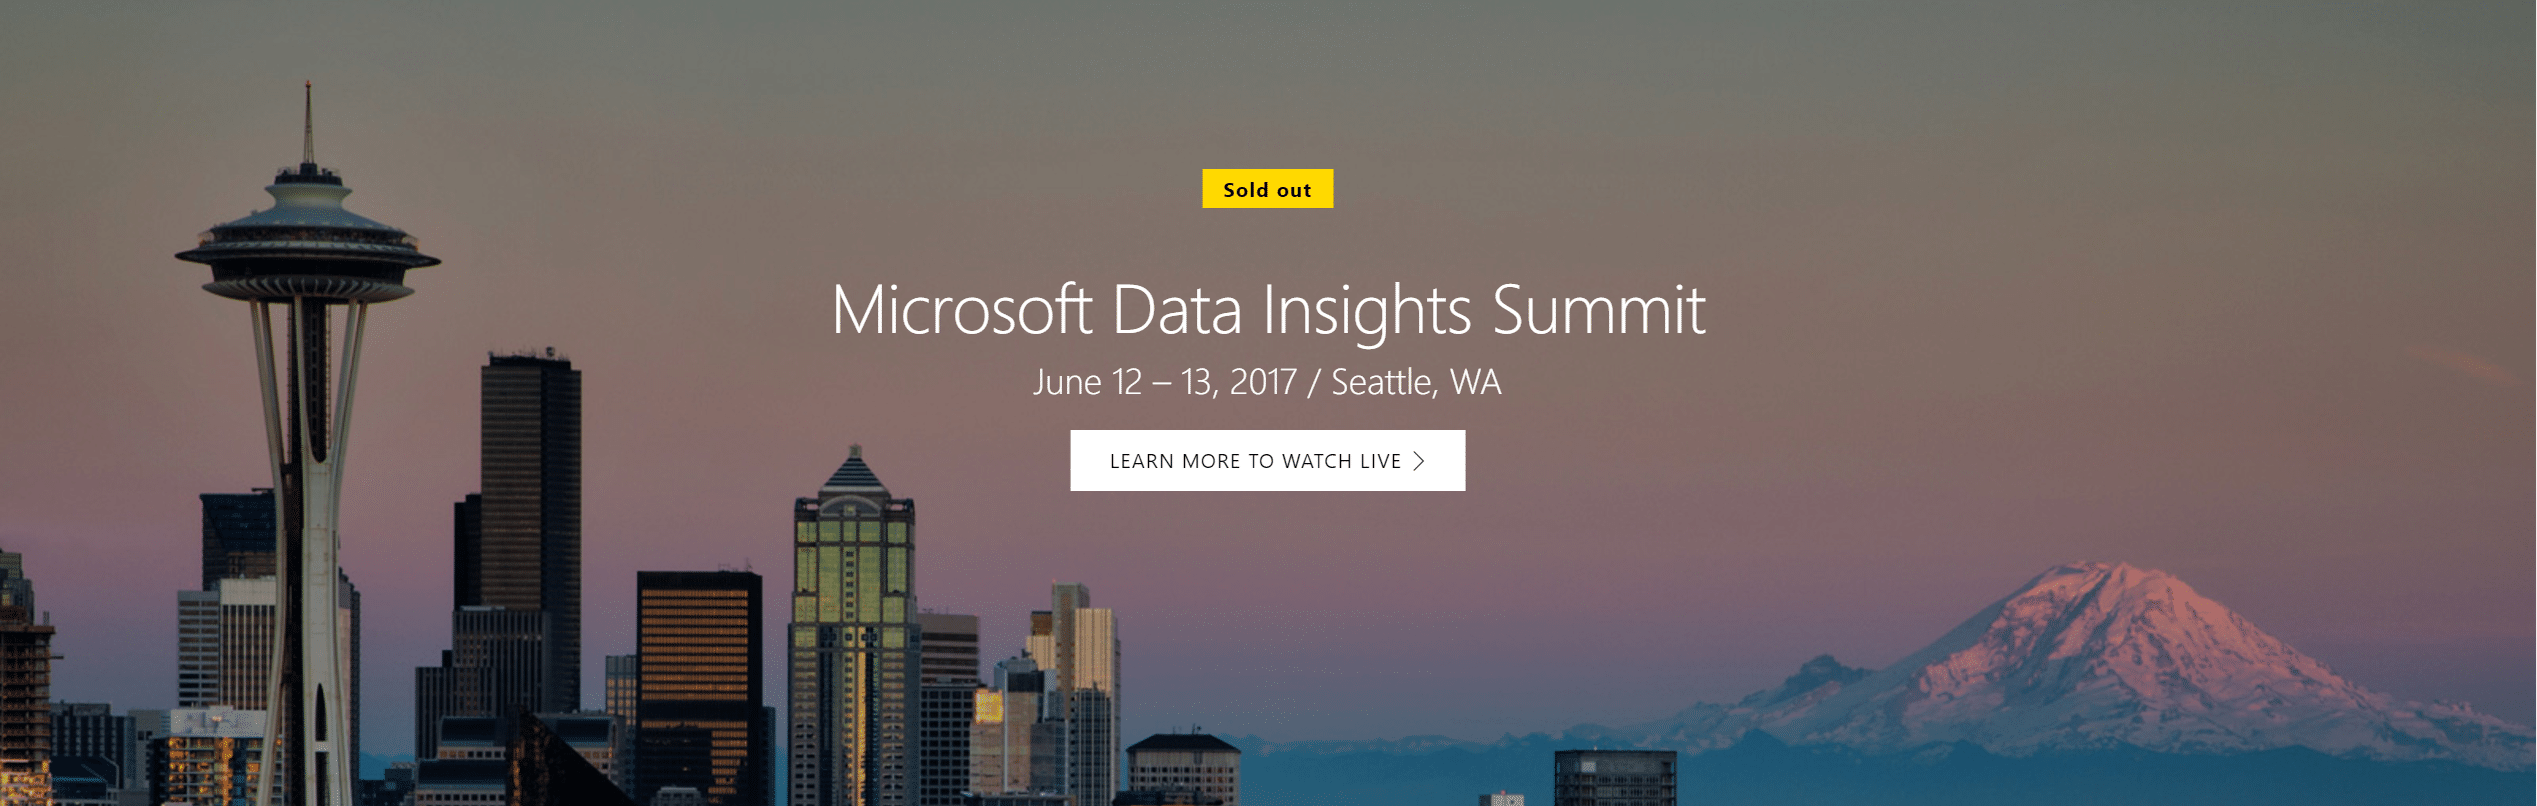 Microsoft Data Insights Summit